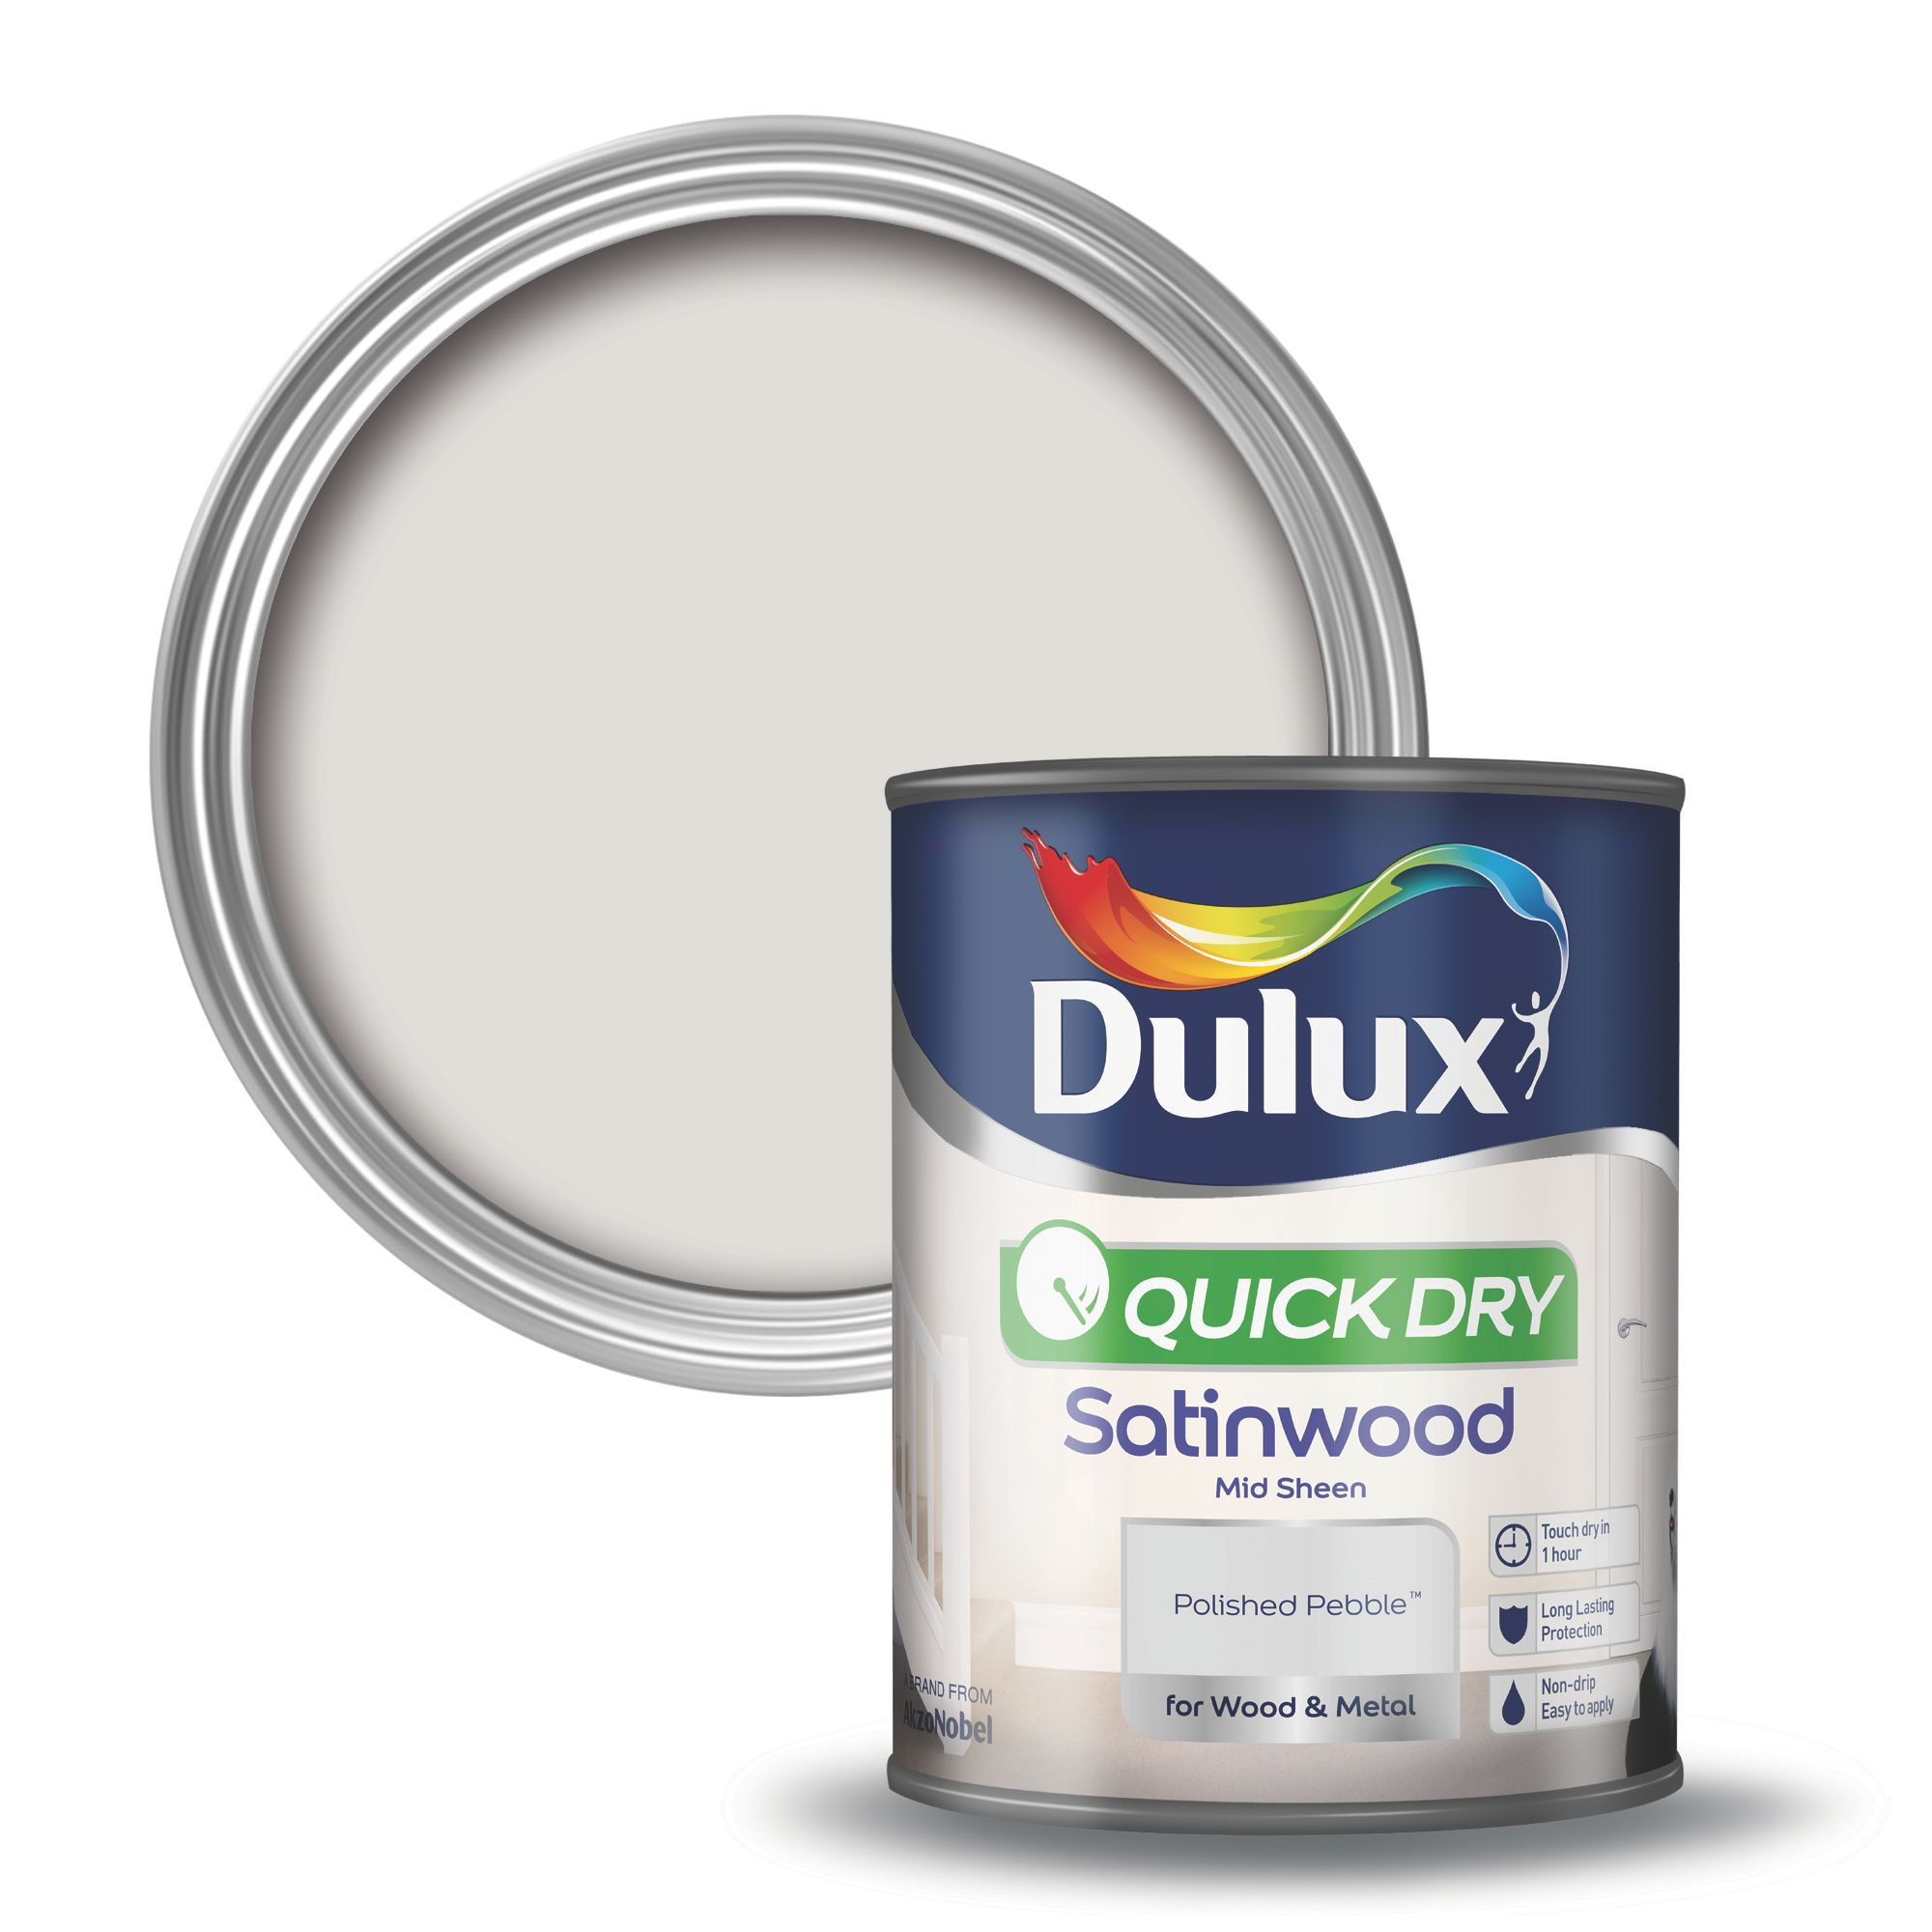 Dulux Polished Pebble Satinwood Wood Amp Metal Paint 0 75l